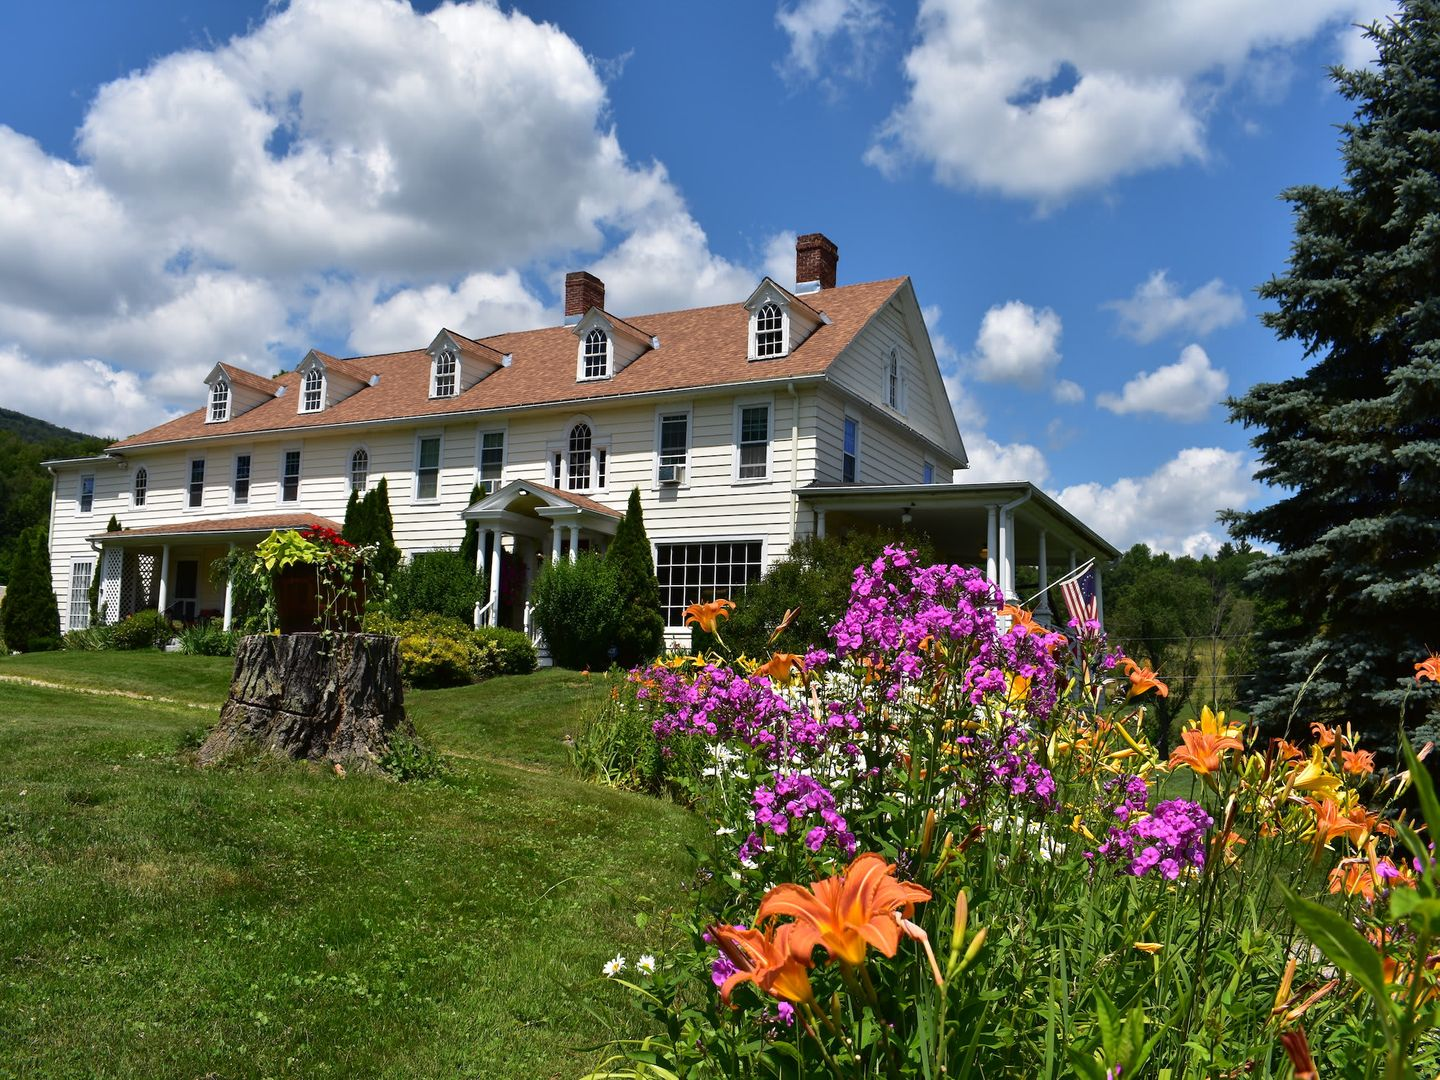 A close up of a flower garden in front of a house at Harbour House Inn B&B.